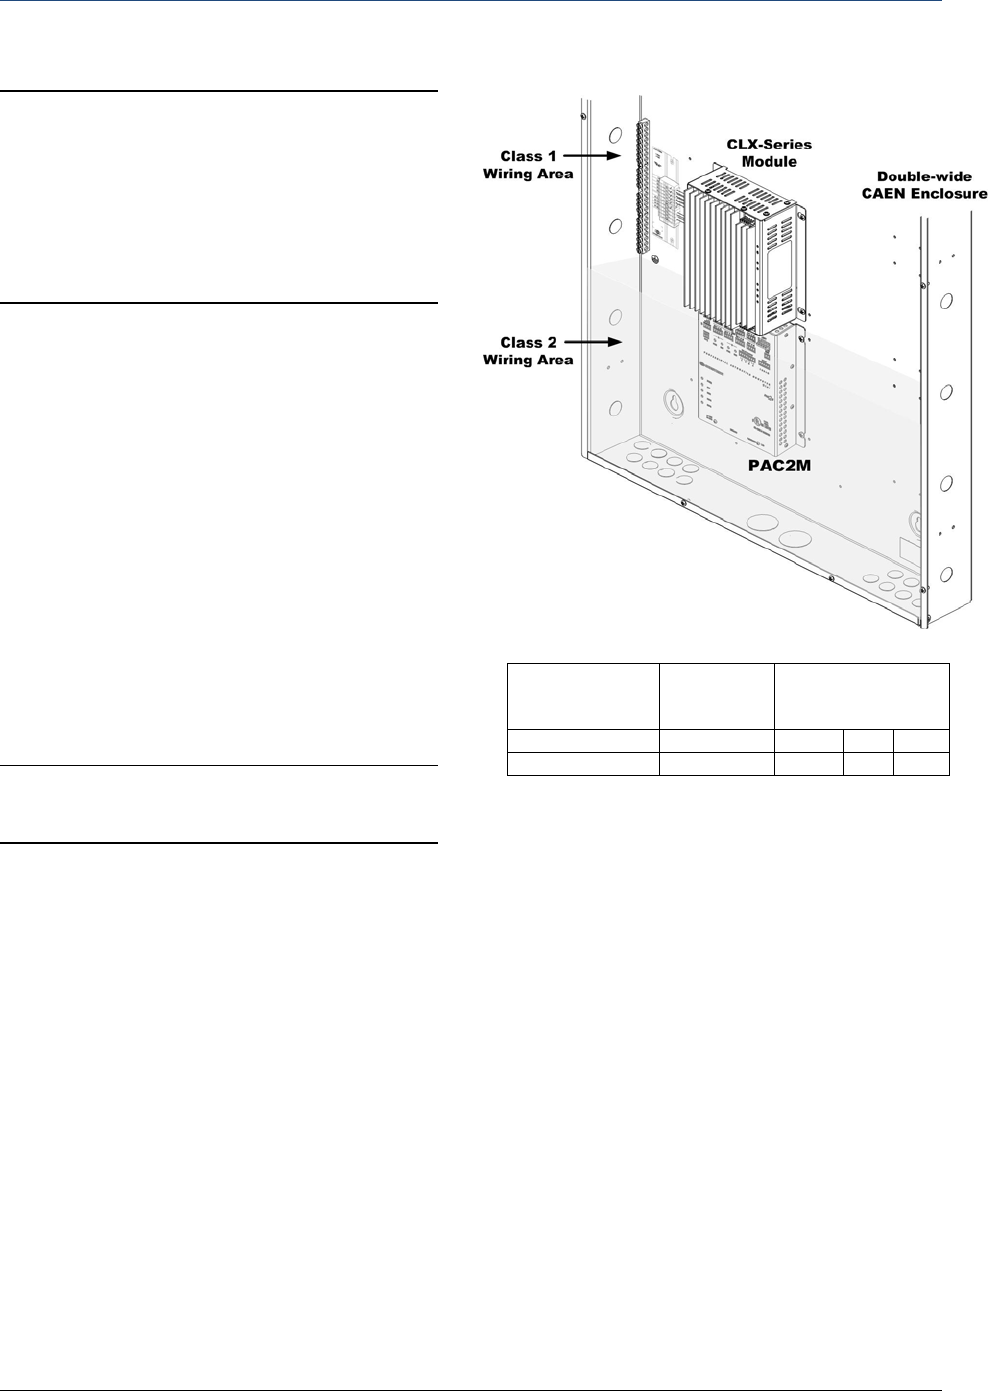 Crestron Pac2m Wiring Diagrams Trusted Cls C6 Diagram Electronic Residential Lighting Users Manual Design Guide Bose